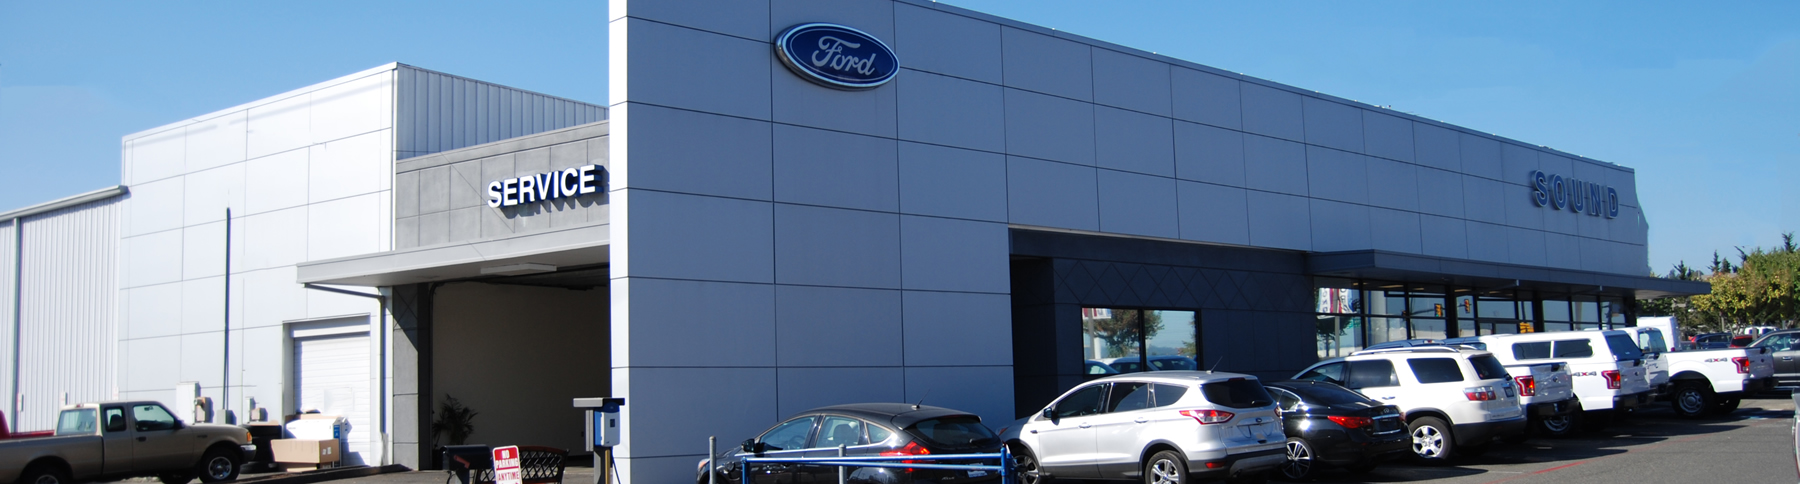 Sound Ford Service Dept